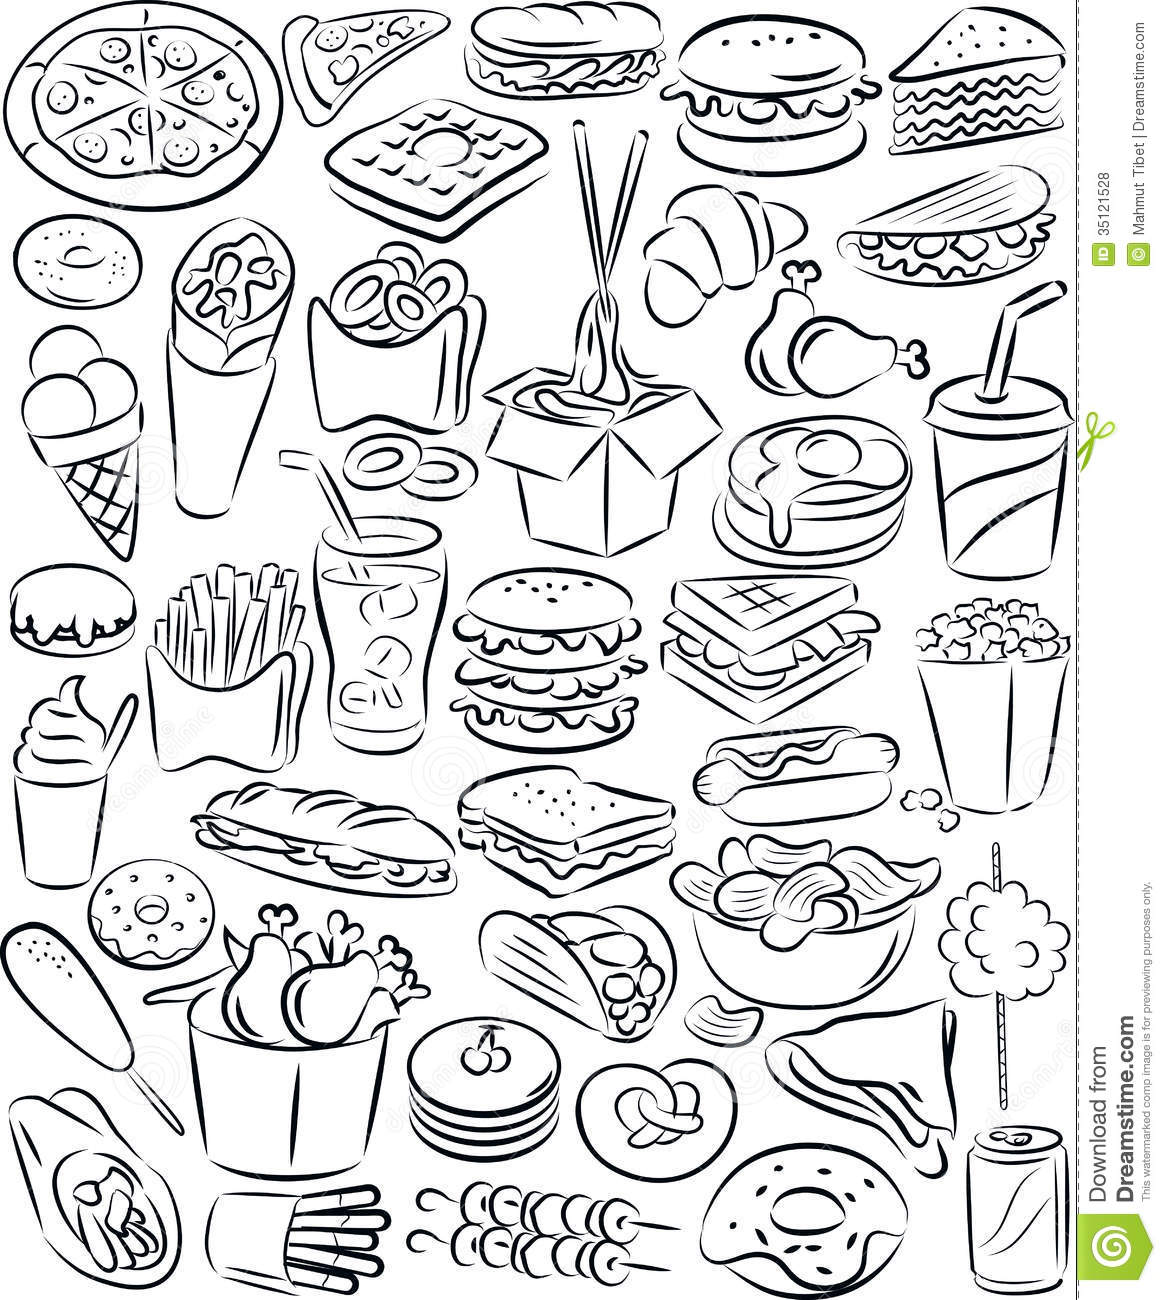 free black white food clipart images - photo #44